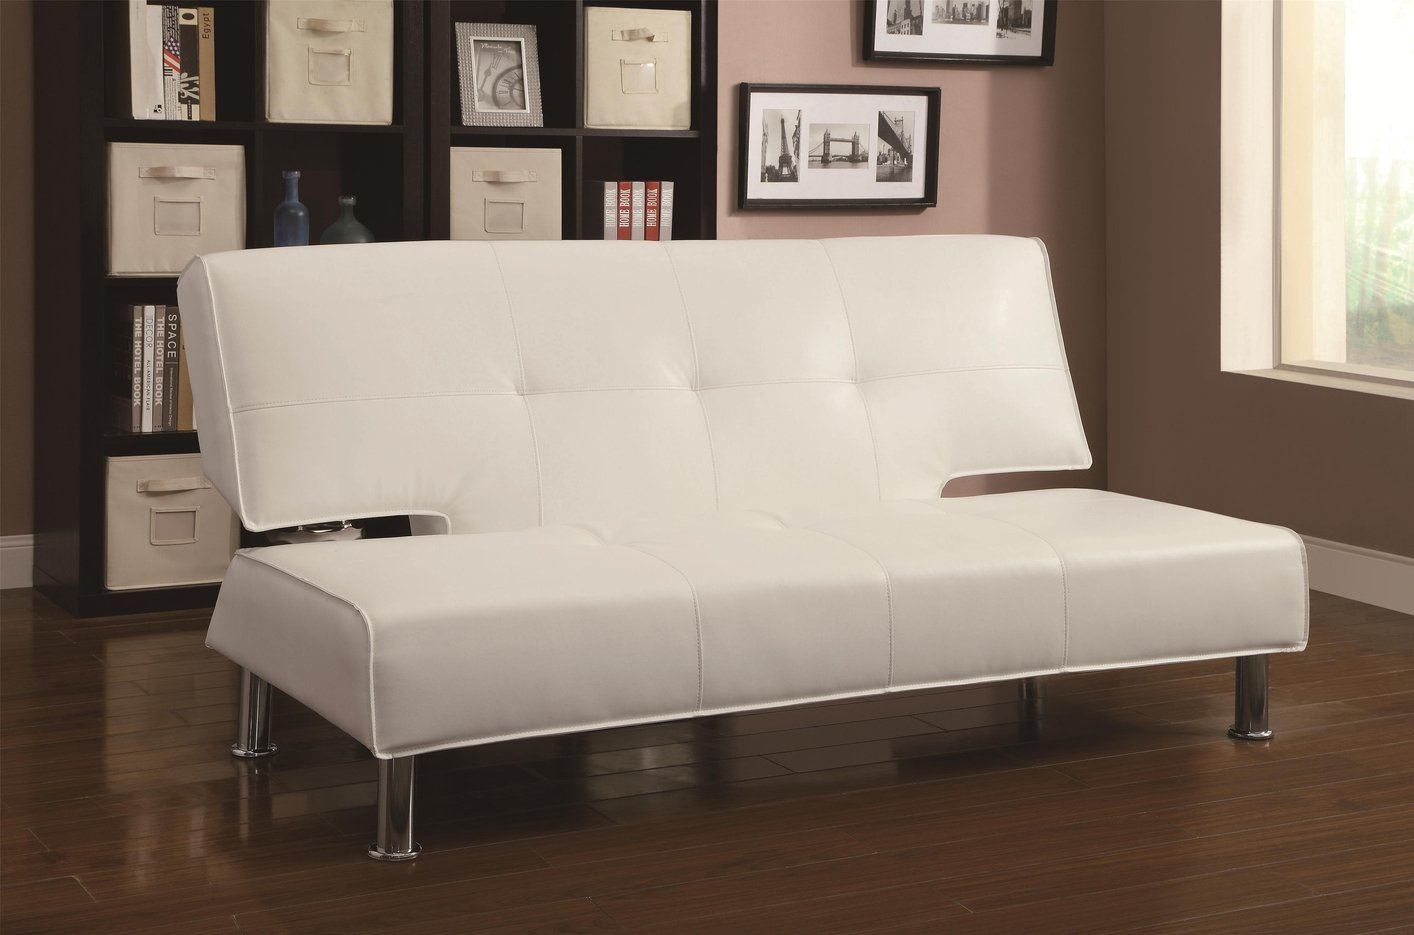 Coaster 300296 White Leather Sofa Bed Steal A Sofa Furniture Outlet Los Angeles Ca